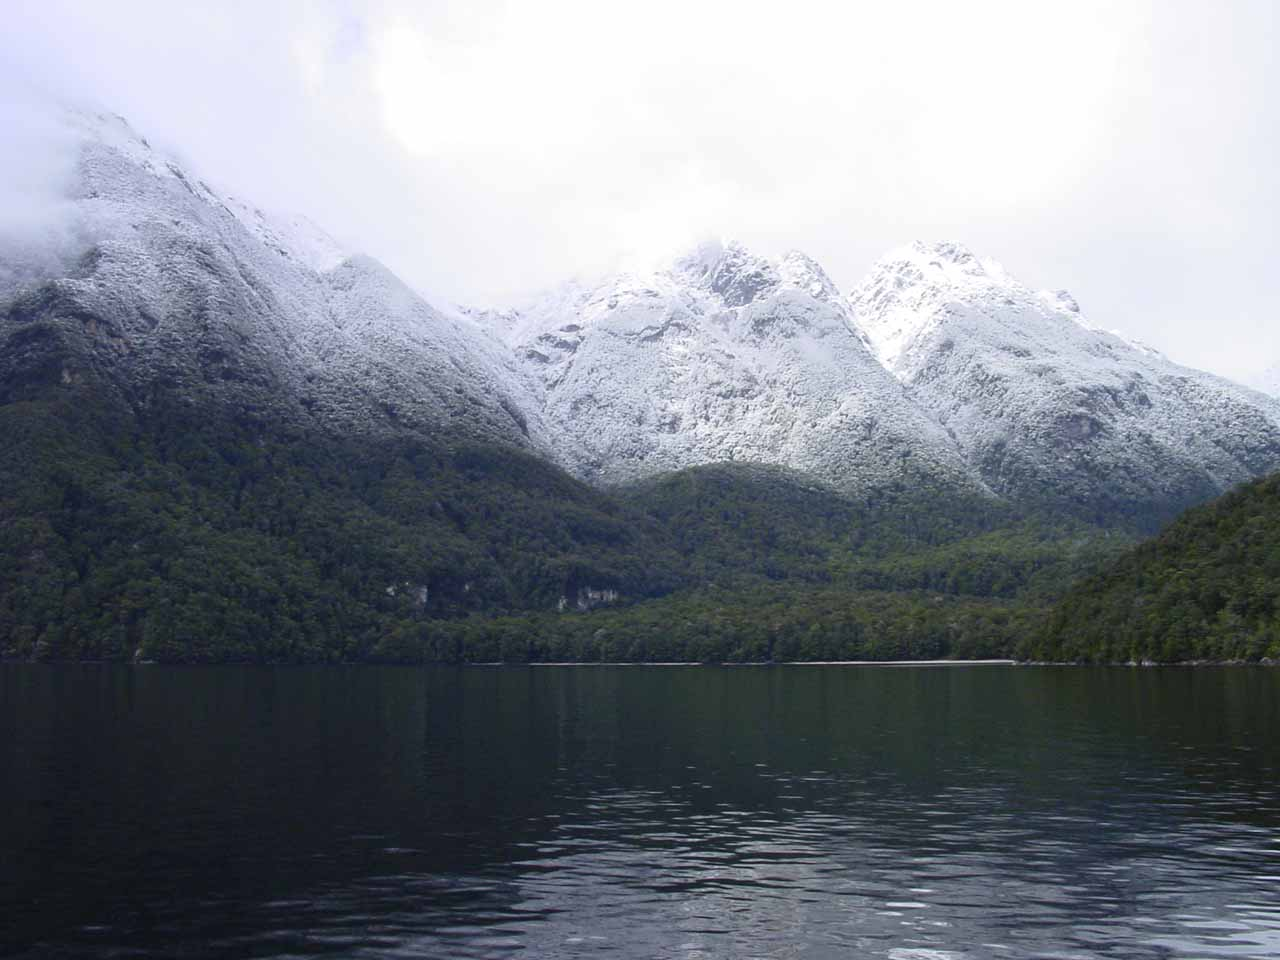 As we were cruising across Lake Manapouri, we could see the temperate rainforest carpeting the neighbouring mountains with a fresh dusting of snow